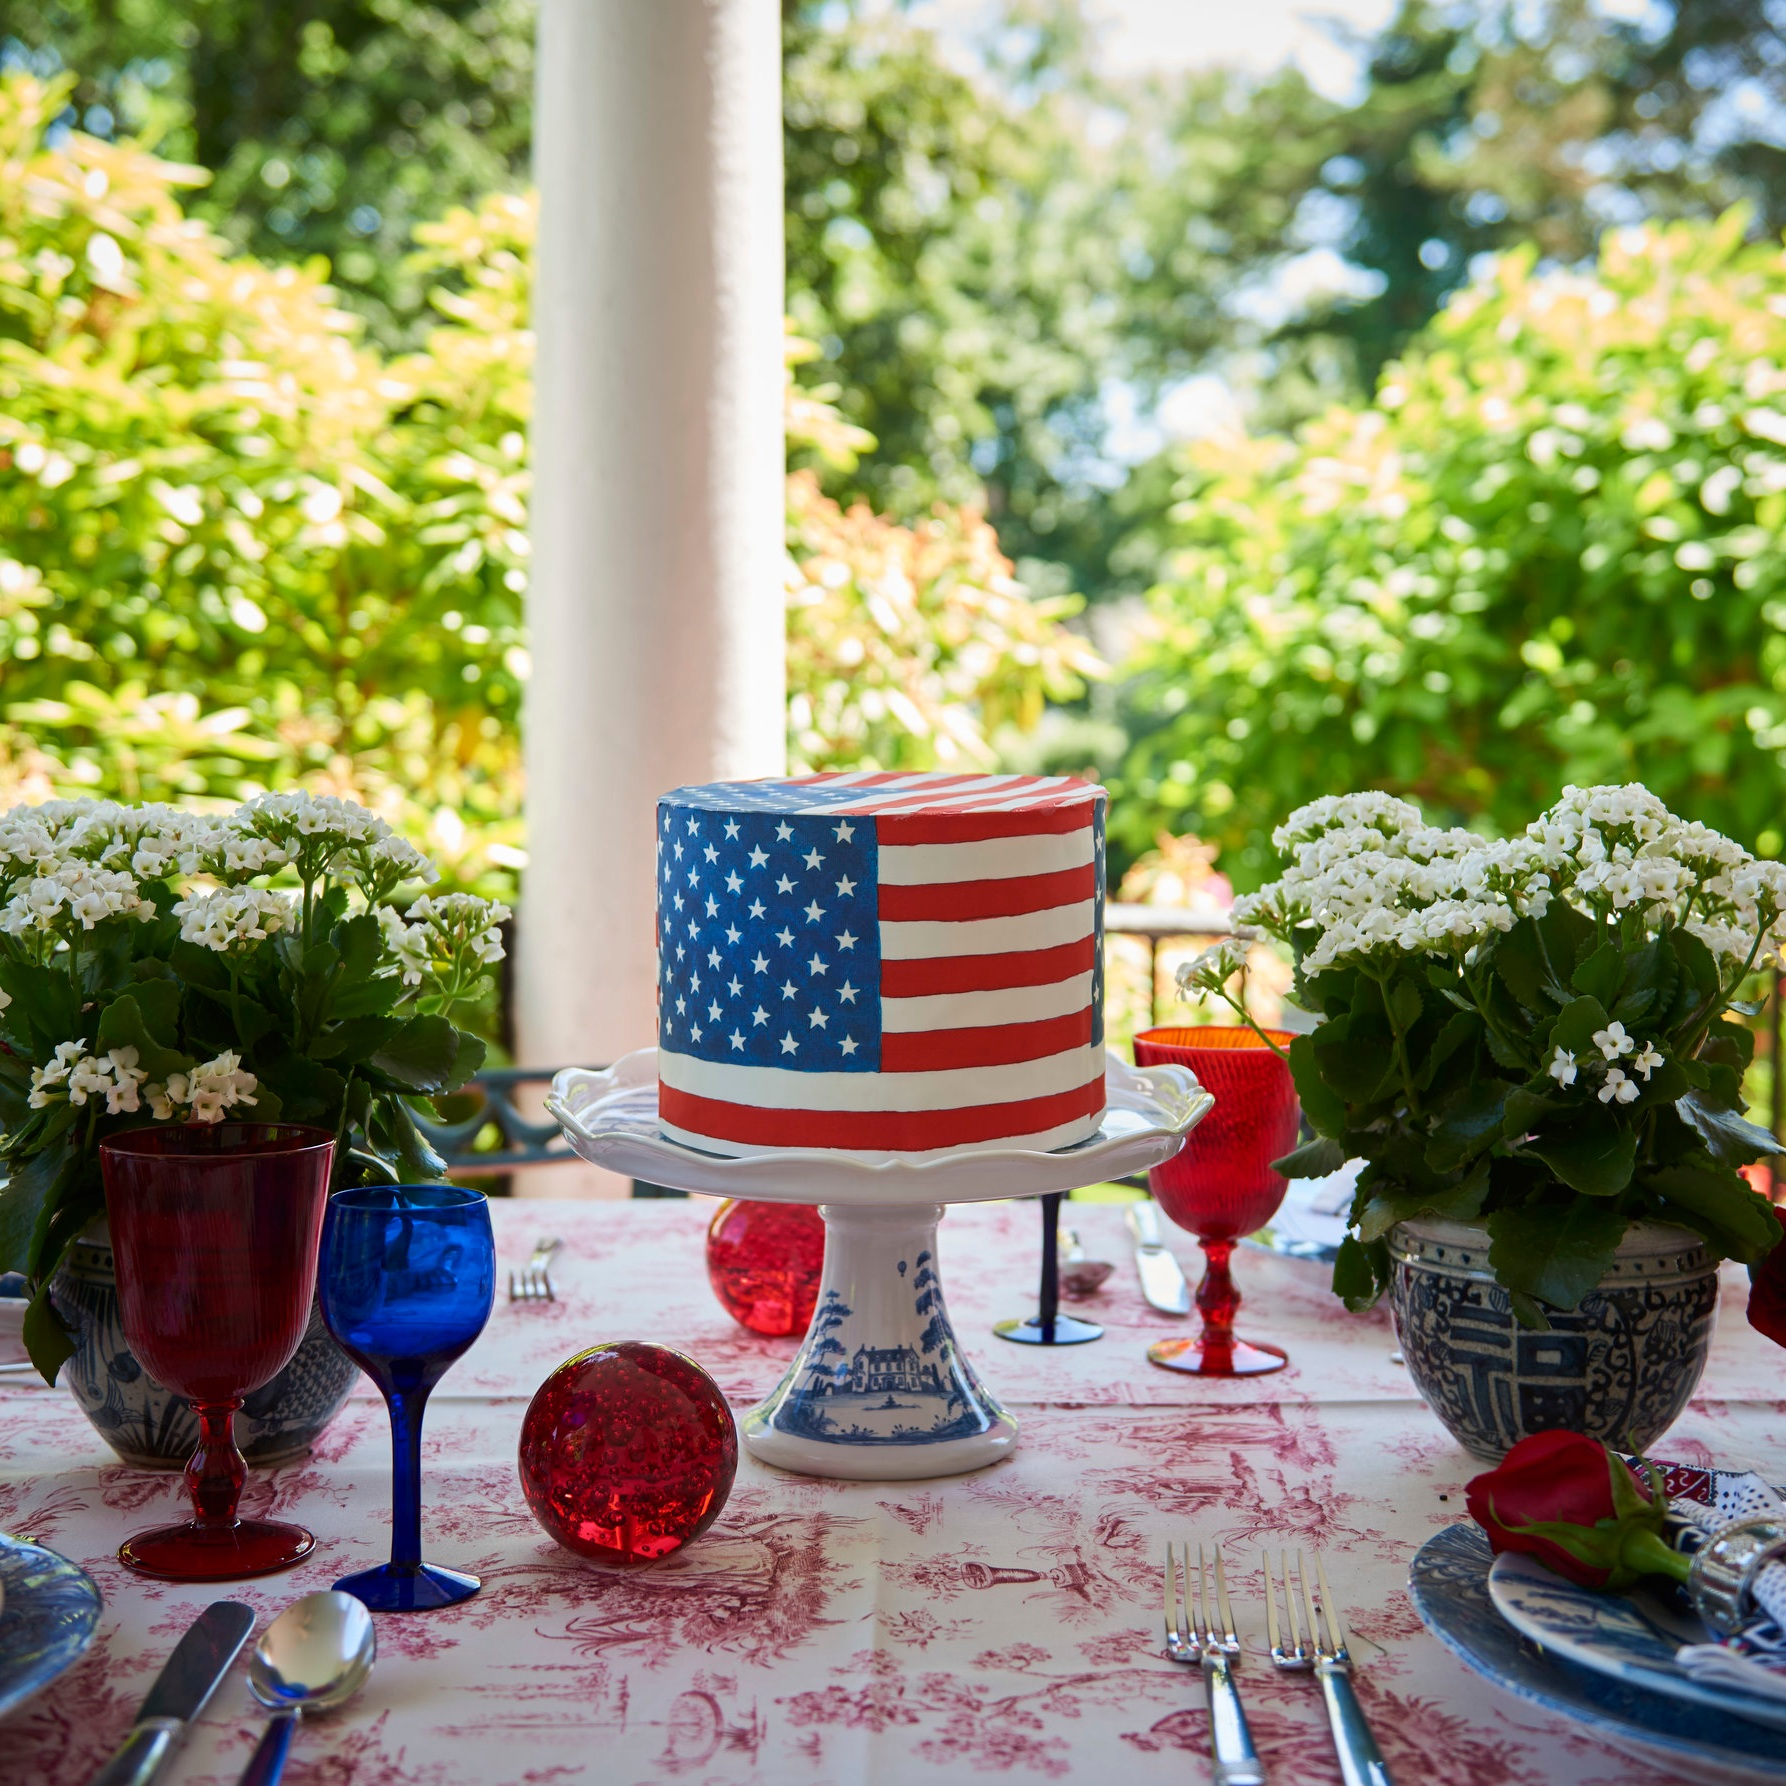 Cake Wrapped in  Flag Chefanie Sheets , over red & white toile tablecloth. Photo Credit: William Jess Laird for The Daily Front Row